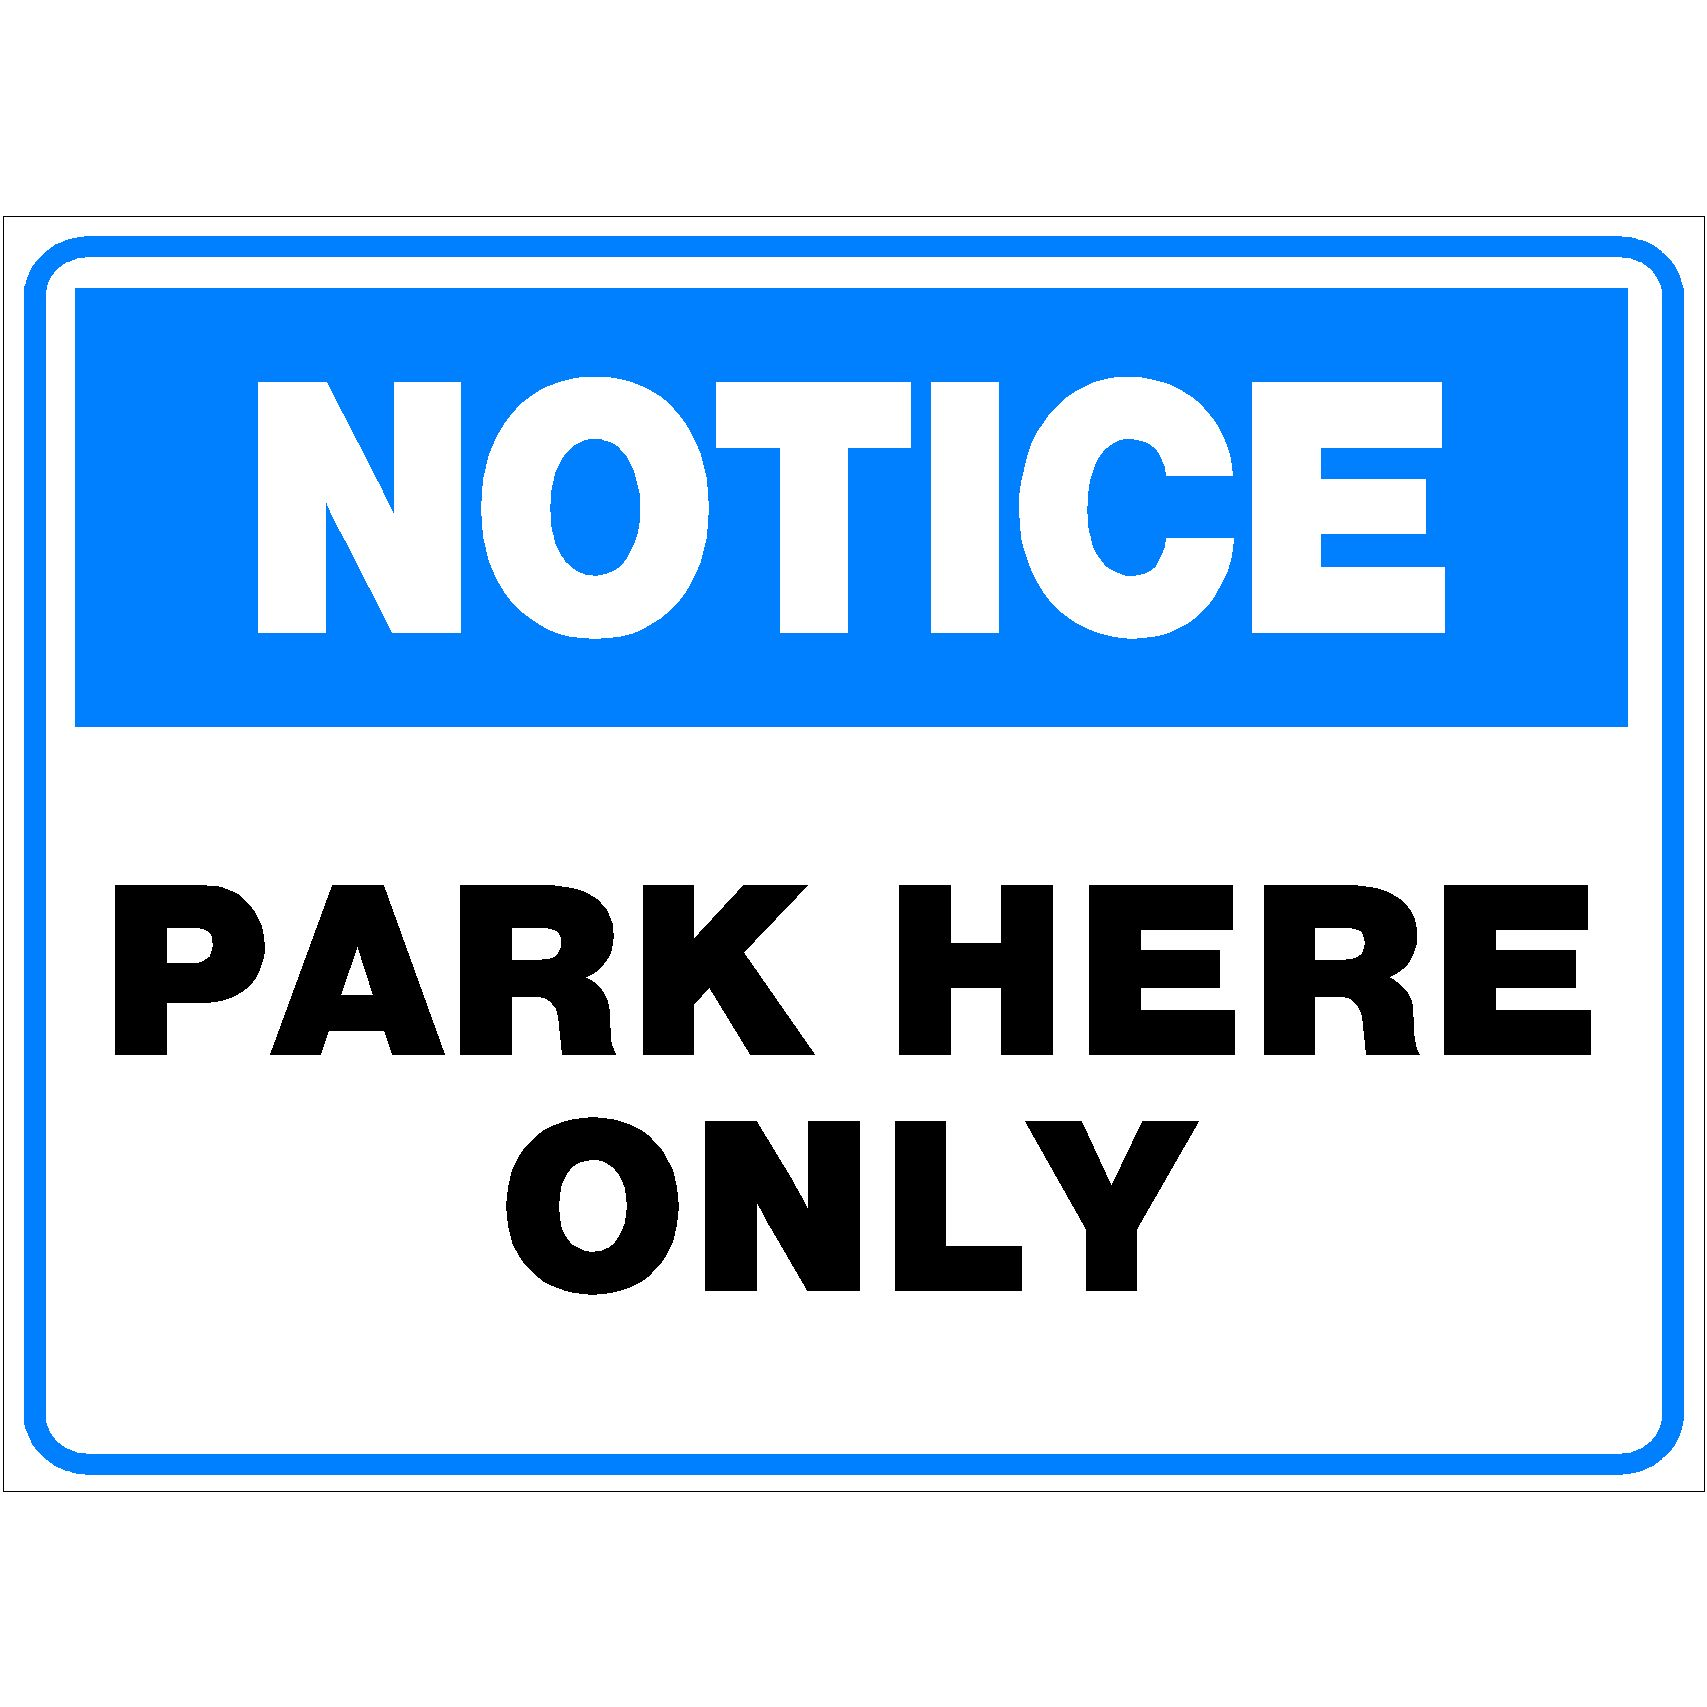 Notice Park Here Only